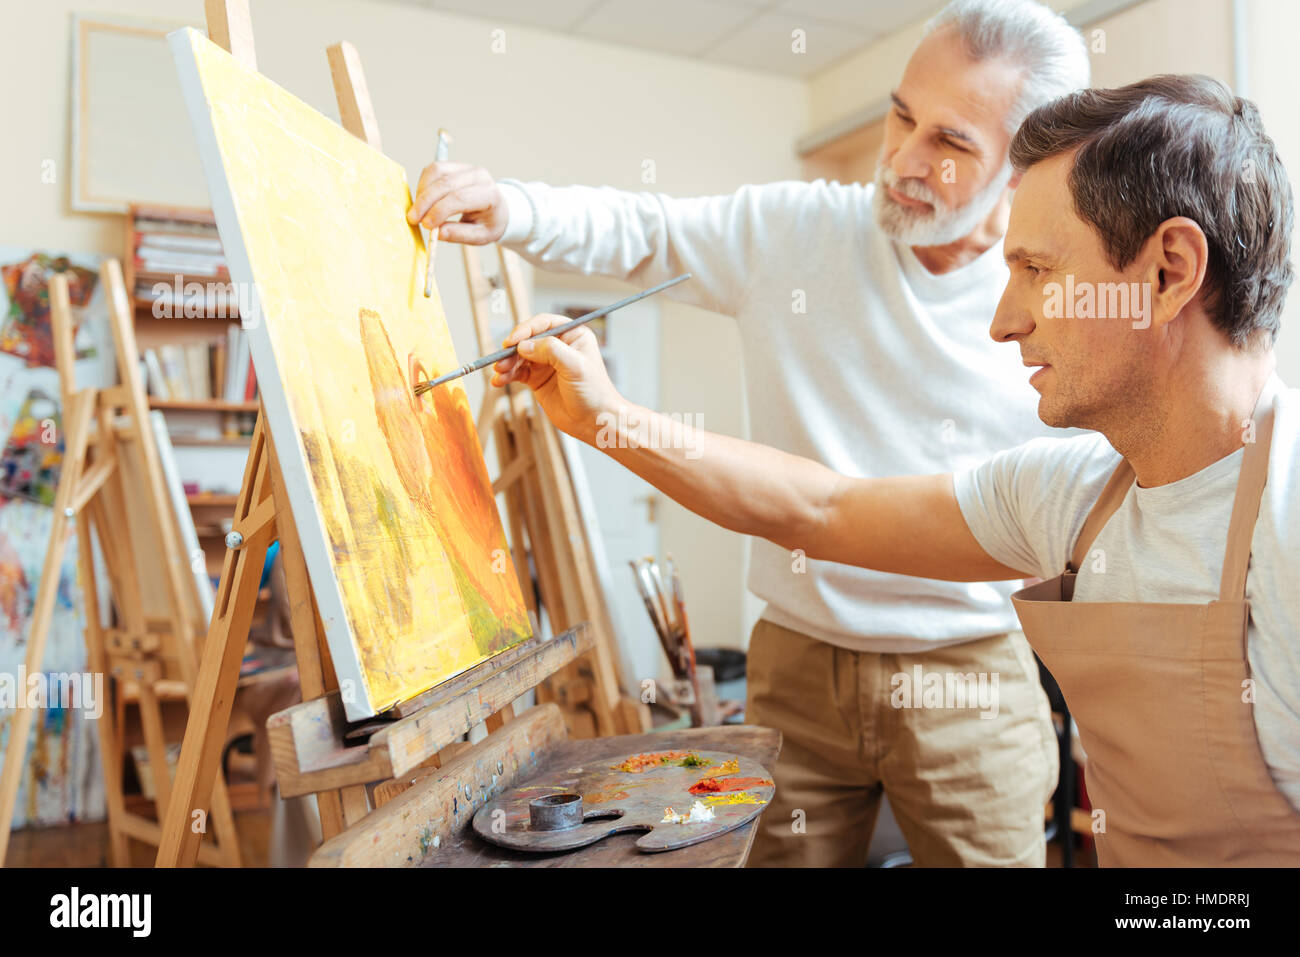 Inspired artist painting with his young colleague. - Stock Image